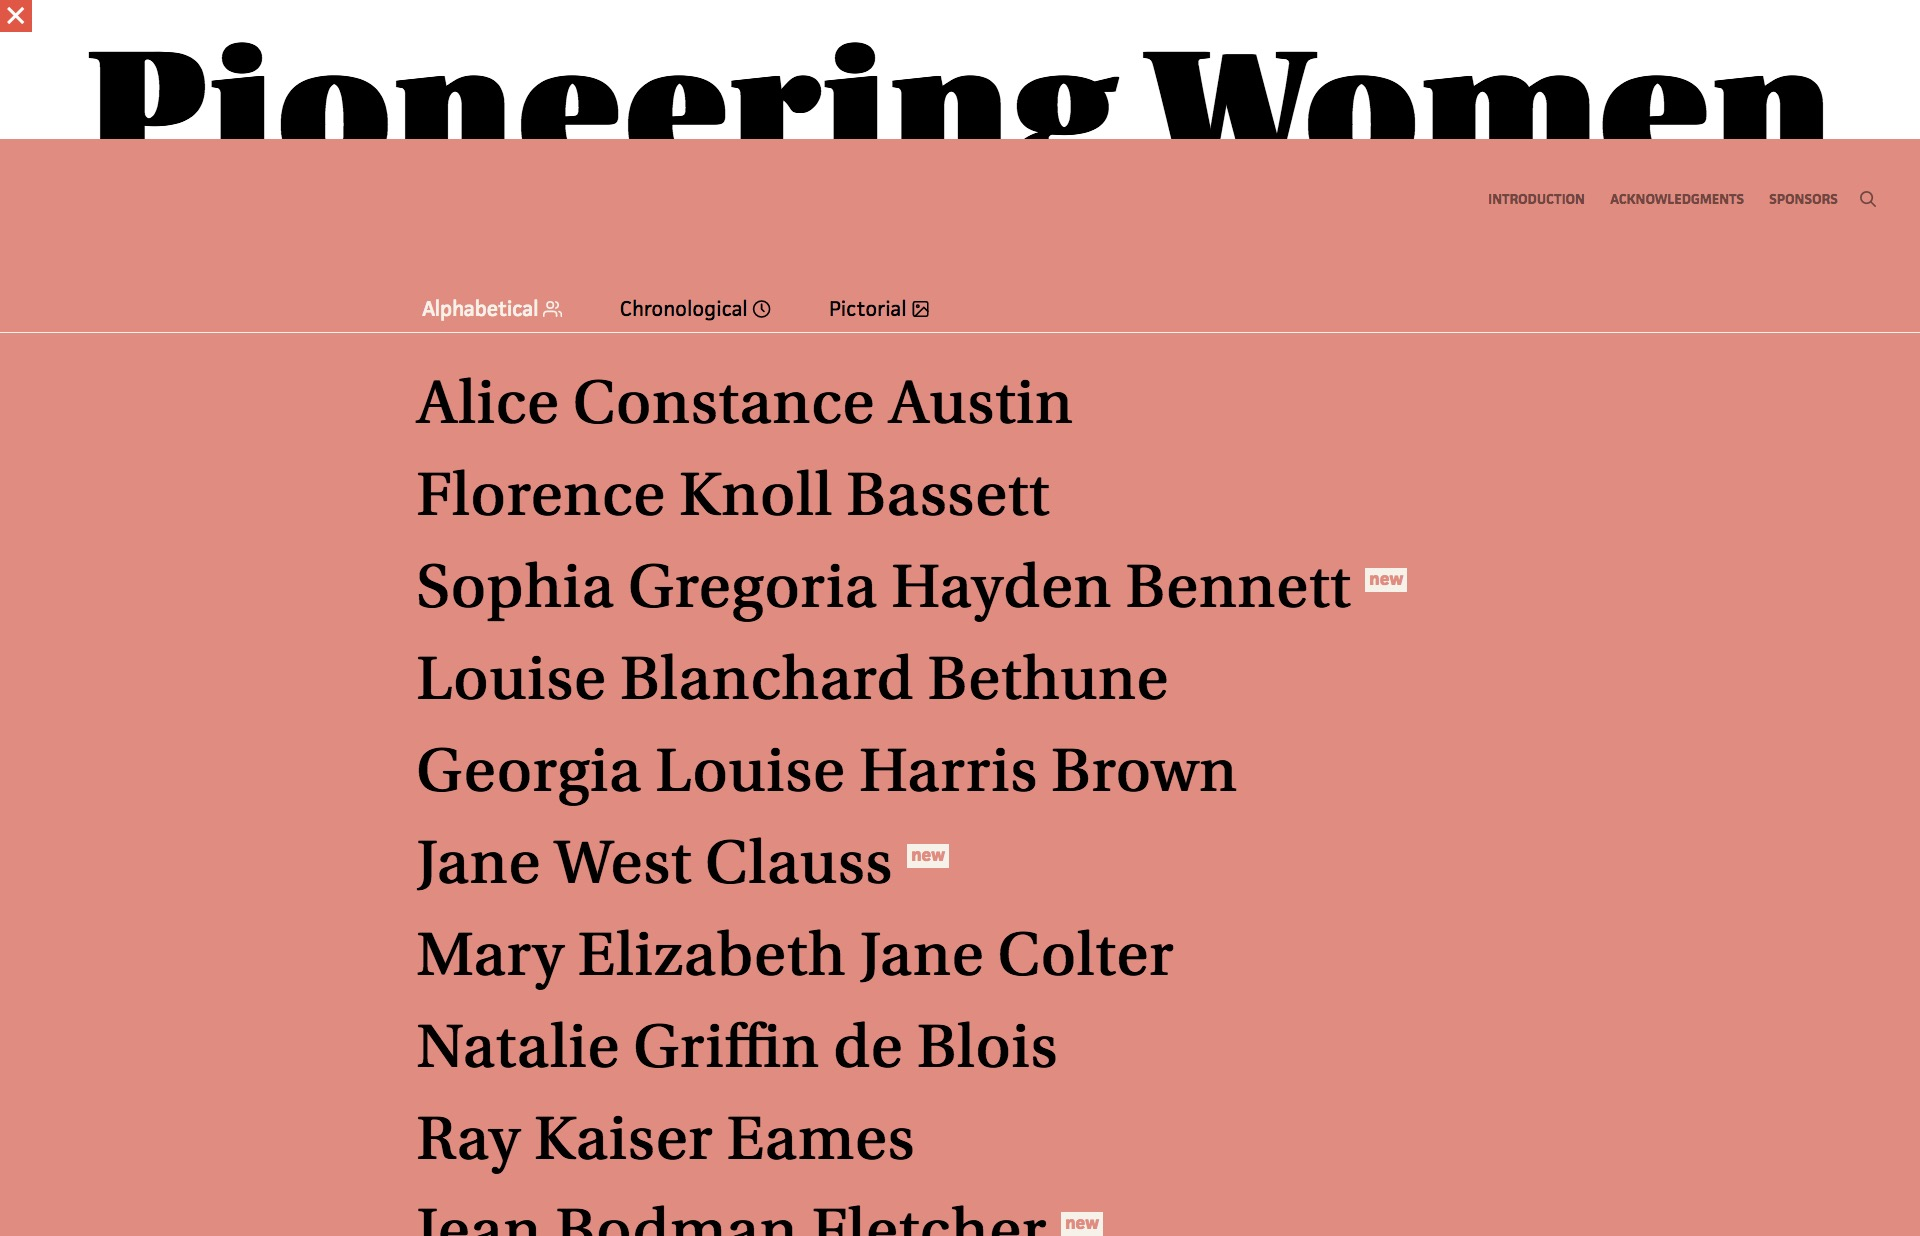 Screenshot of the website Pioneering Women of American Architecture, featured on The Gallery, a curated collection of minimal websites